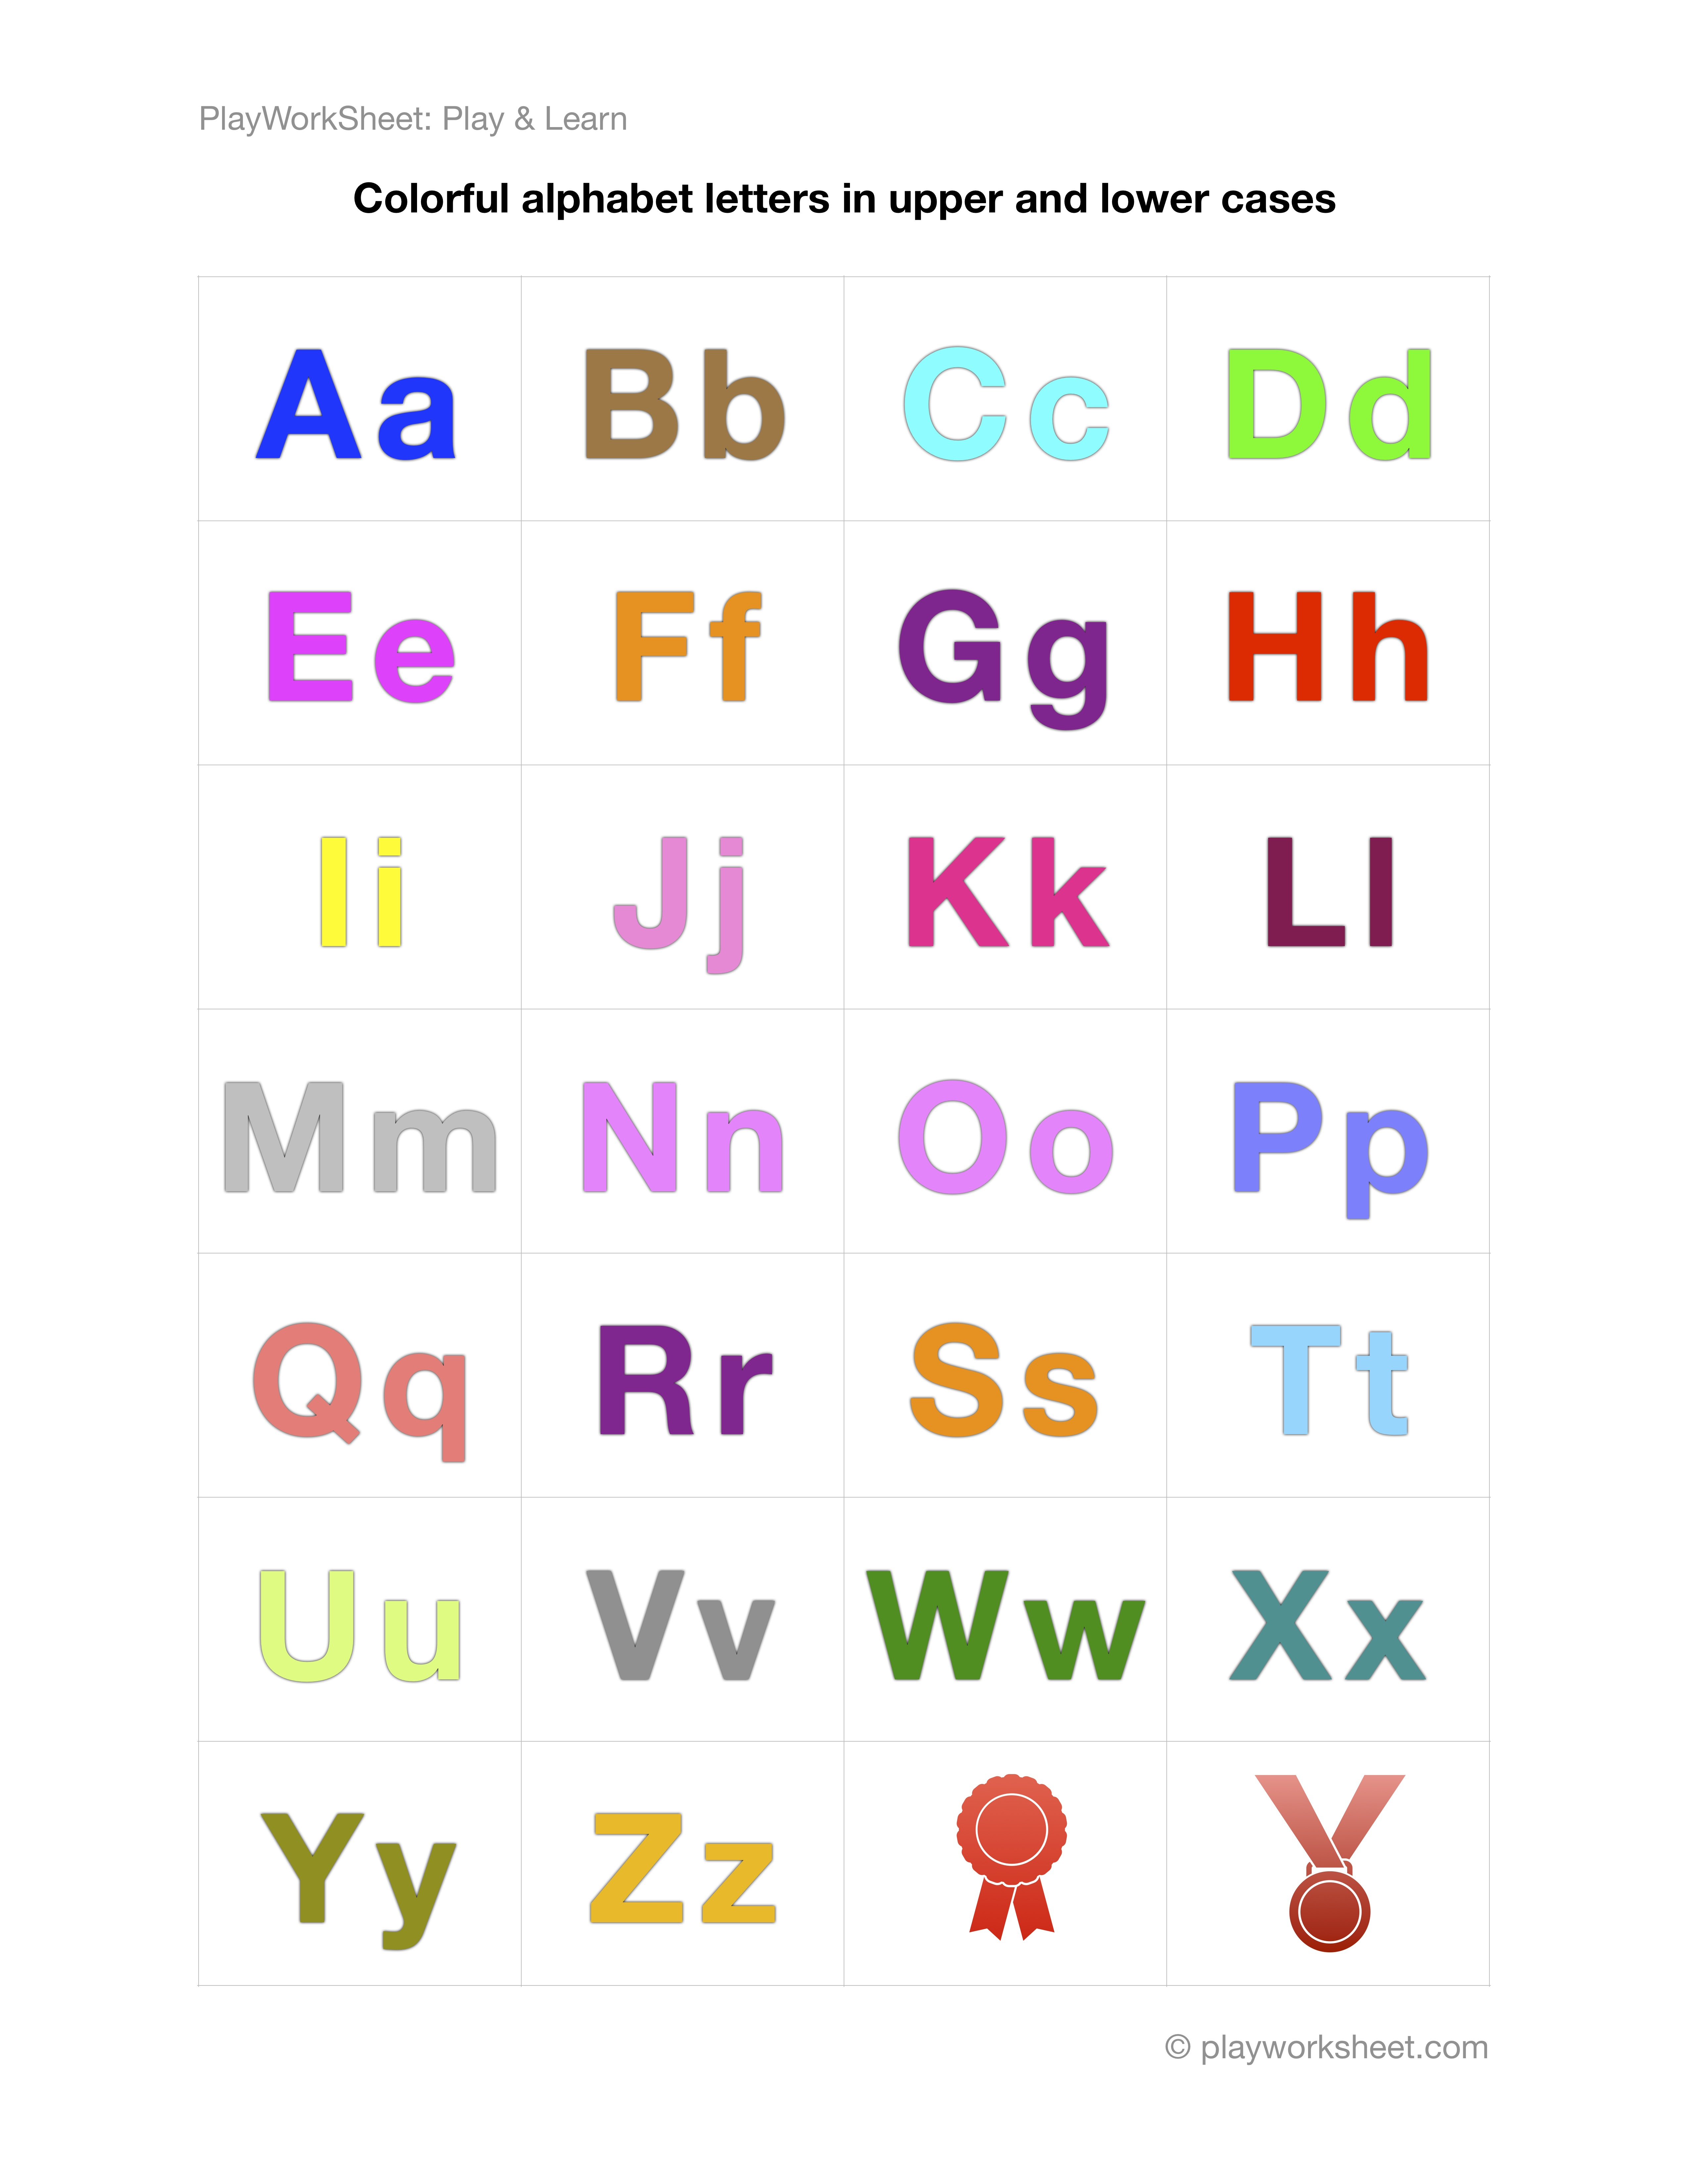 Colorful Alphabet Letters From A To Z In Both Upper And